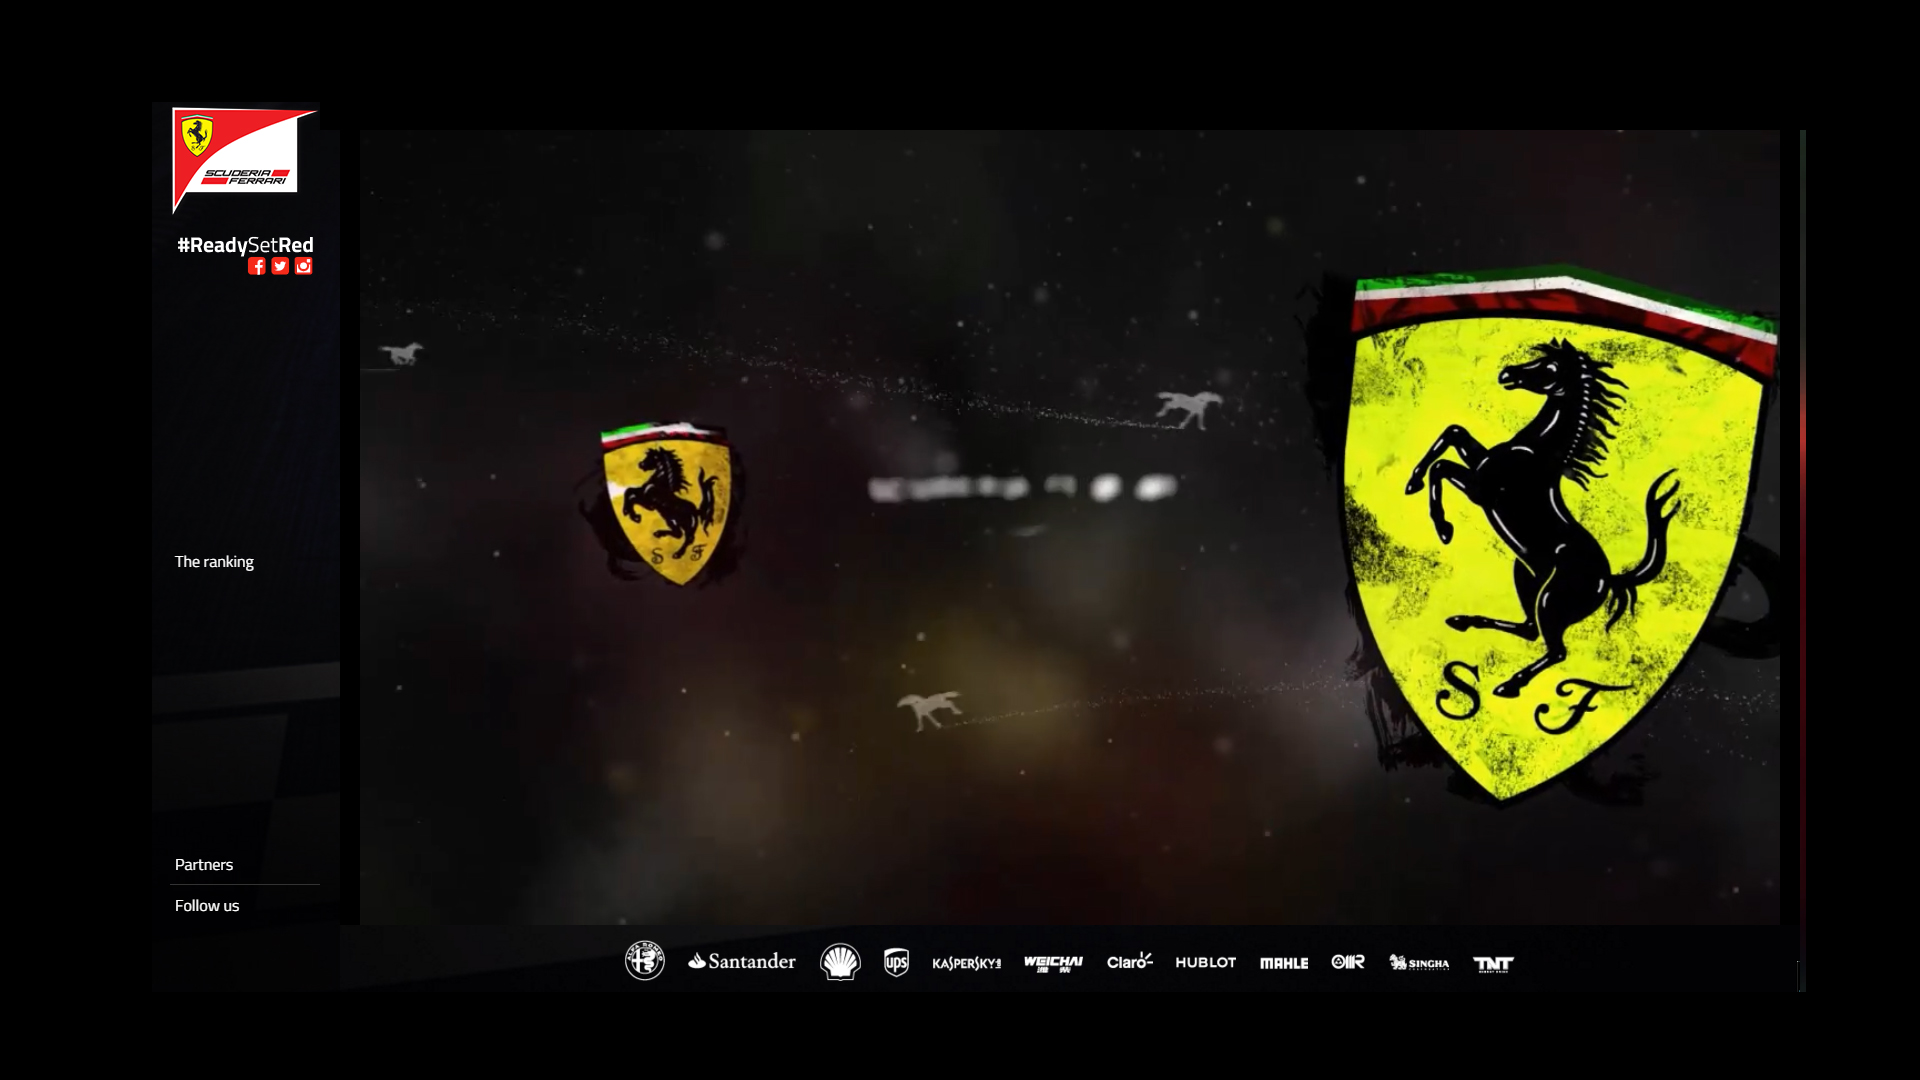 Artwork start - avant / front via livestream Scuderia Ferrari ReadySetRed SF16-H F1 2016